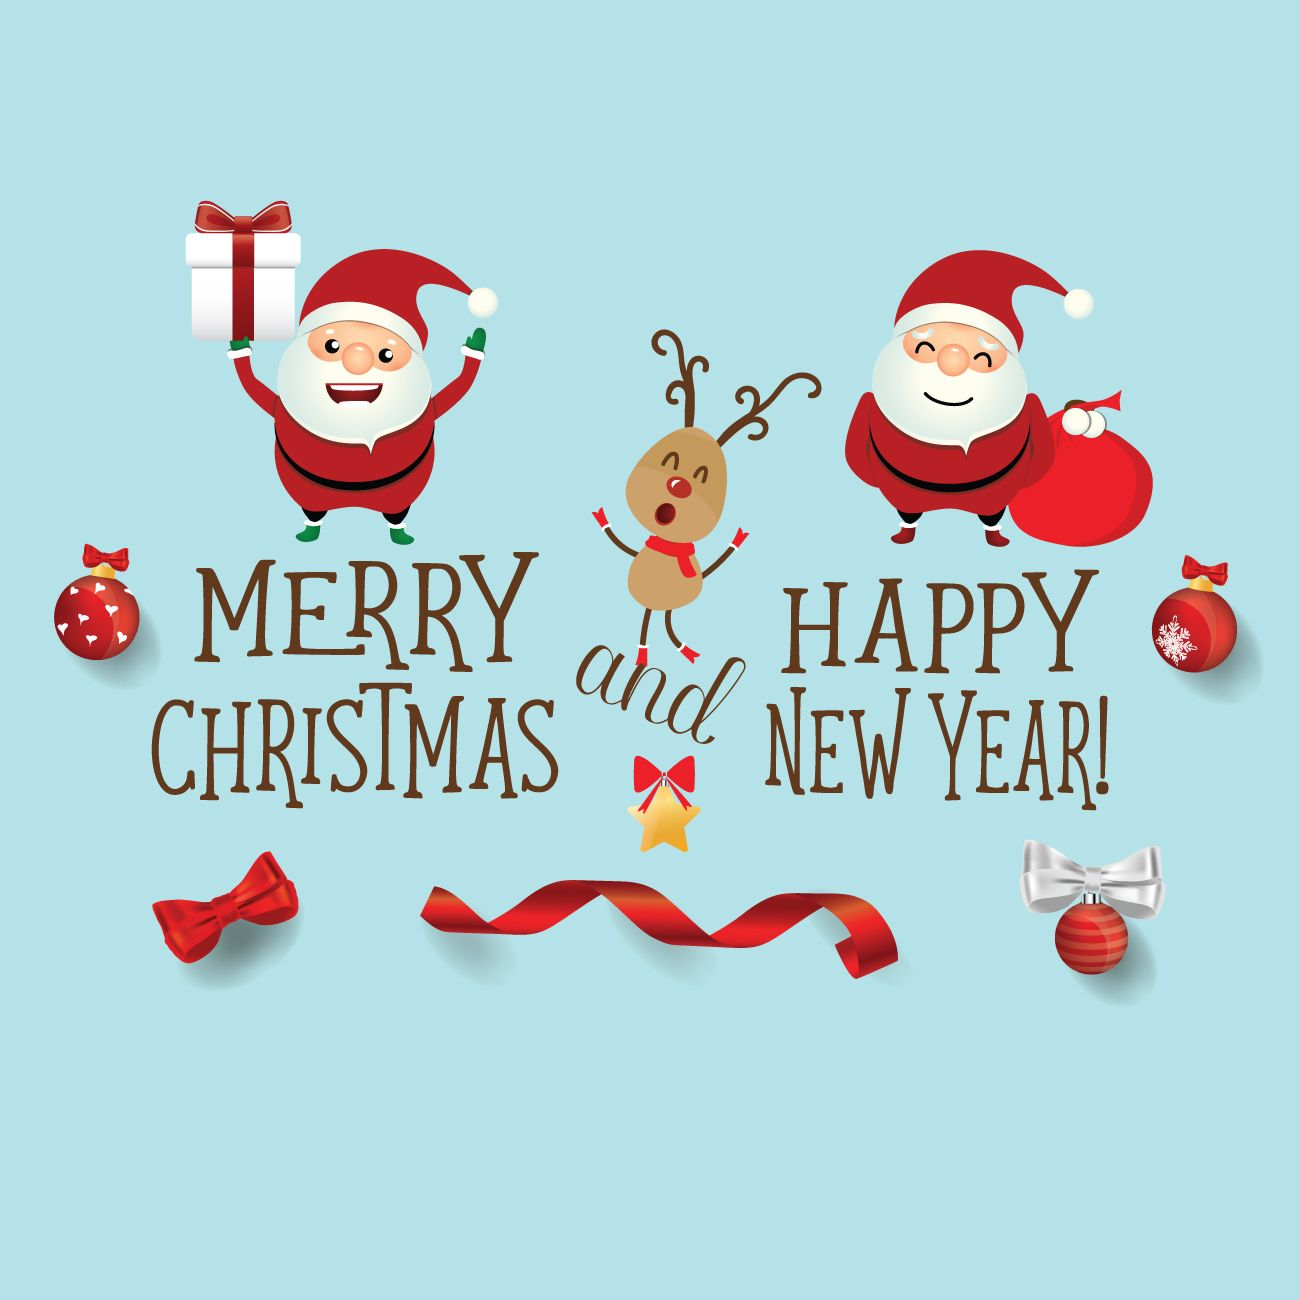 Merry Christmas And Happy New Year Merry Christmas Quotes Merry Christmas Images Happy Christmas Day